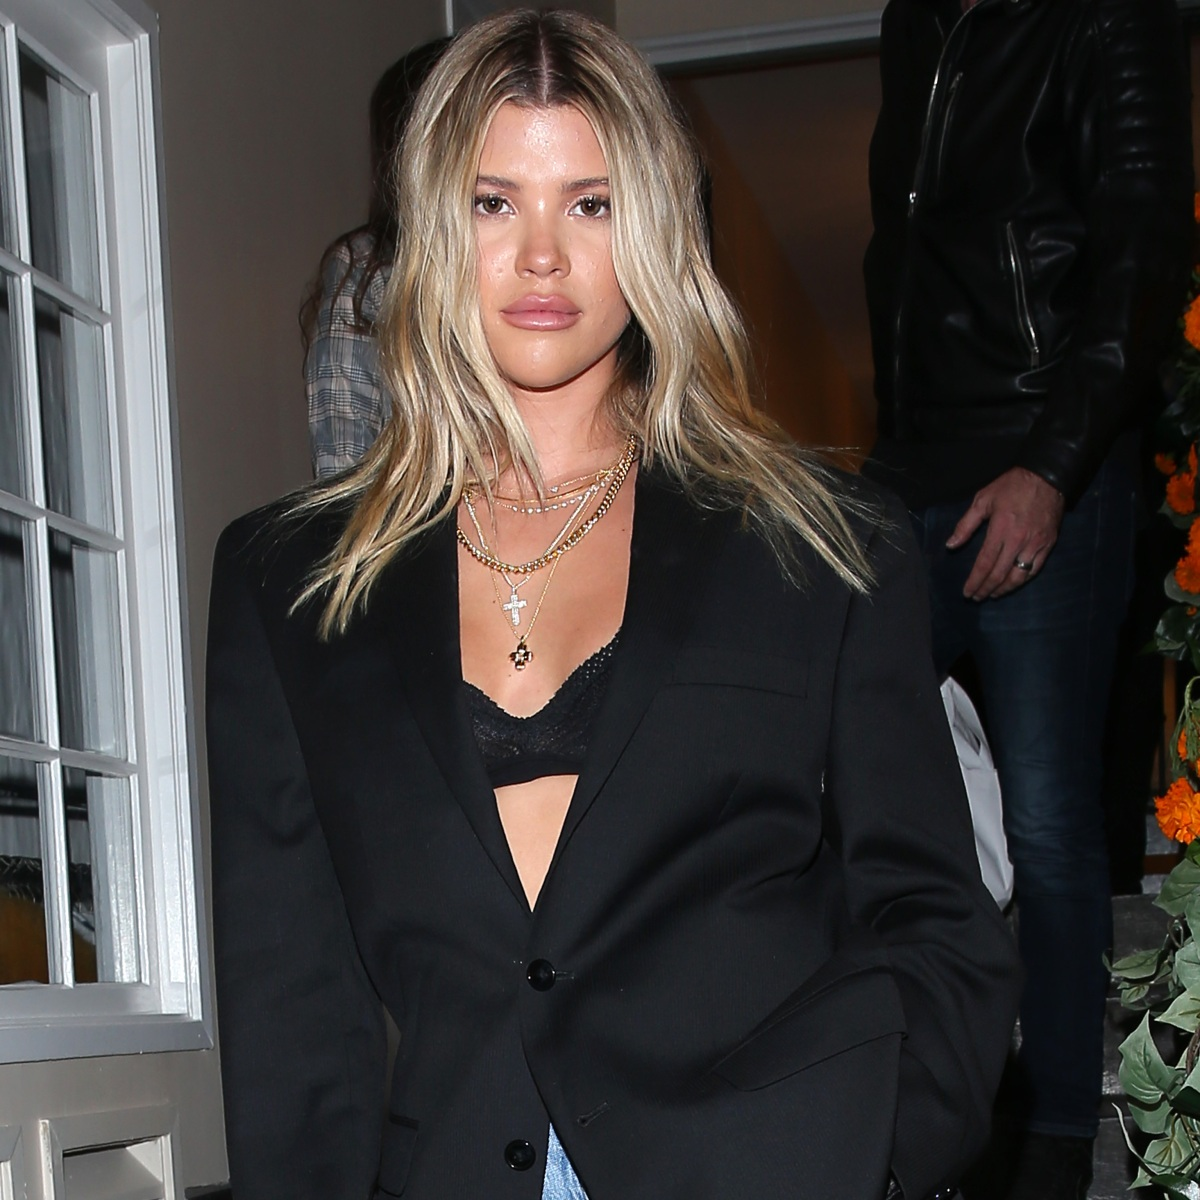 Sofia Richie Looks Like a Total #BossBabe in a Black Blazer, Lacy Bra and Trendy Jeans